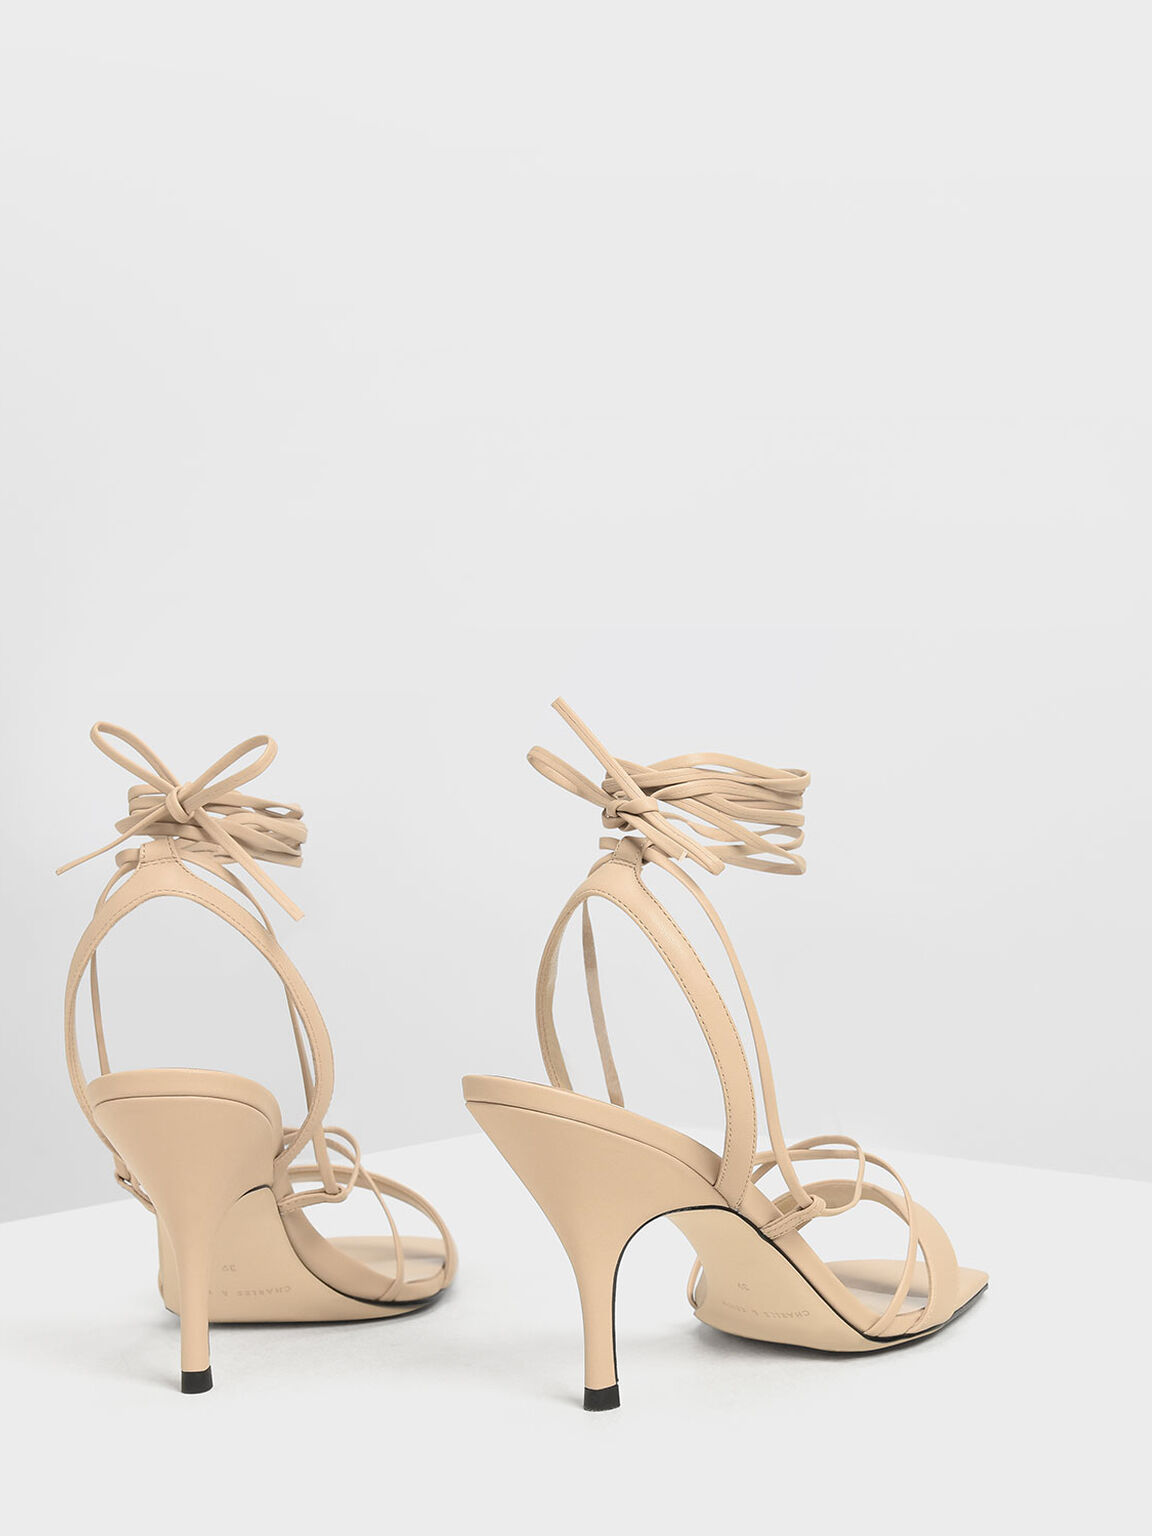 Square Toe Lace-Up Sandals, Nude, hi-res